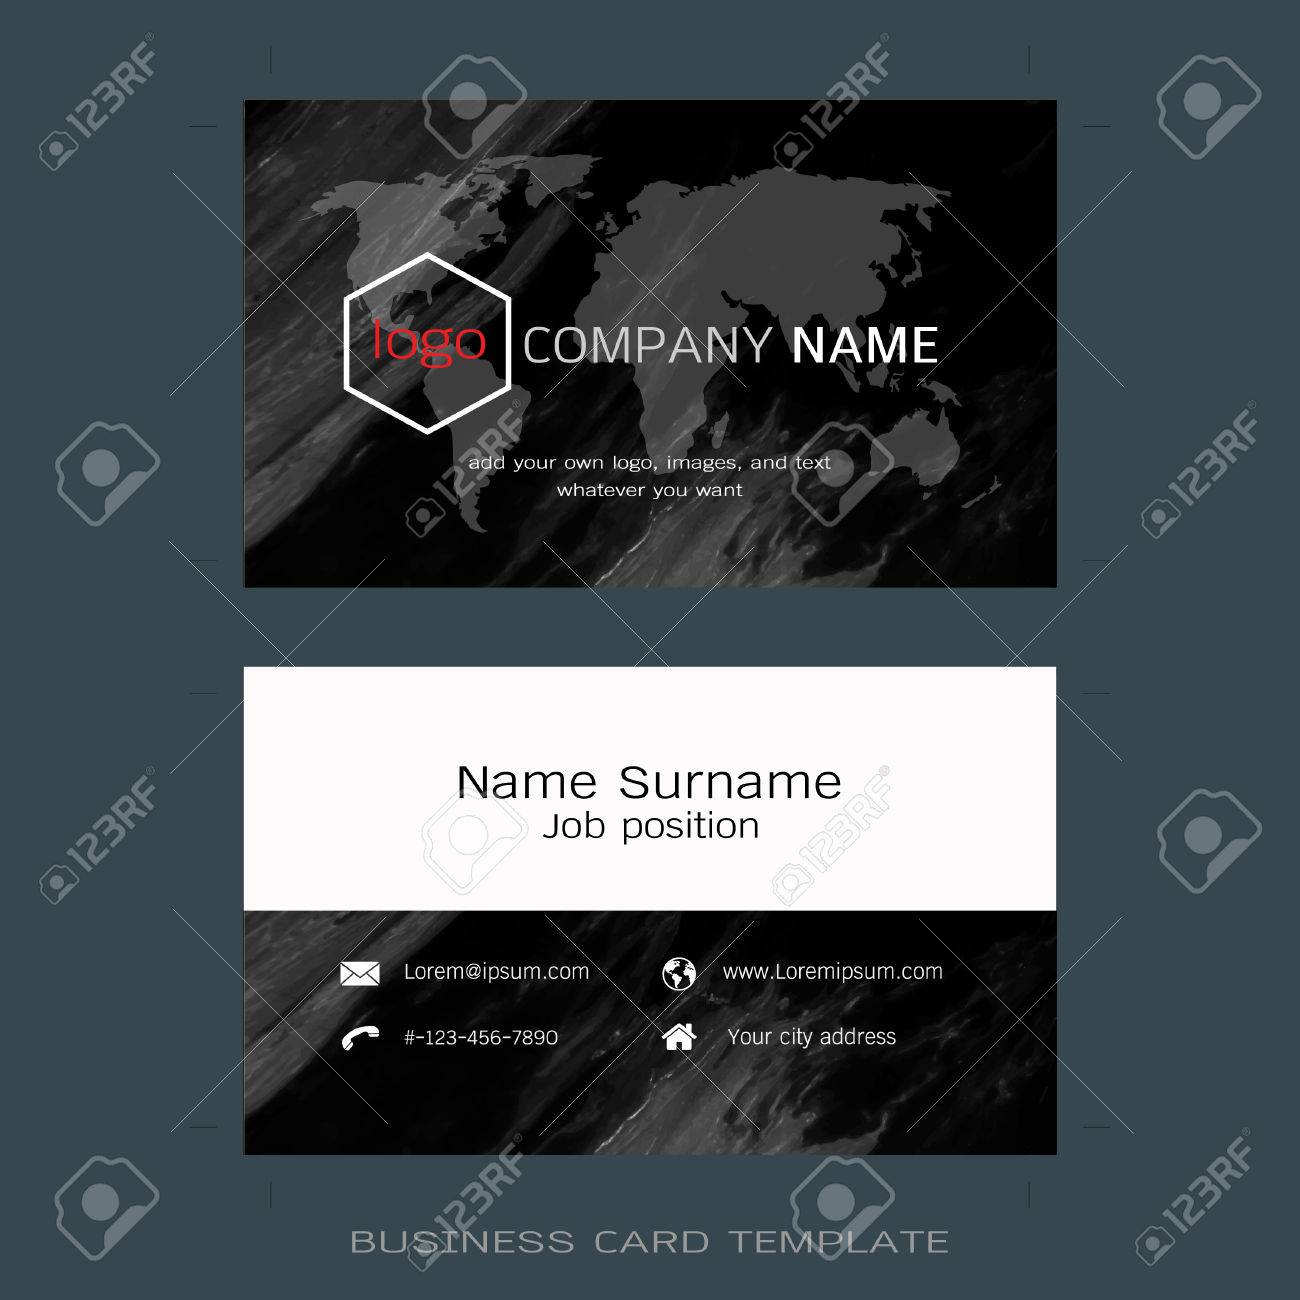 Modern designer business card layout templates marble texture imagens modern designer business card layout templates marble texture background easy to use by print a special offer or add your own logo images reheart Gallery